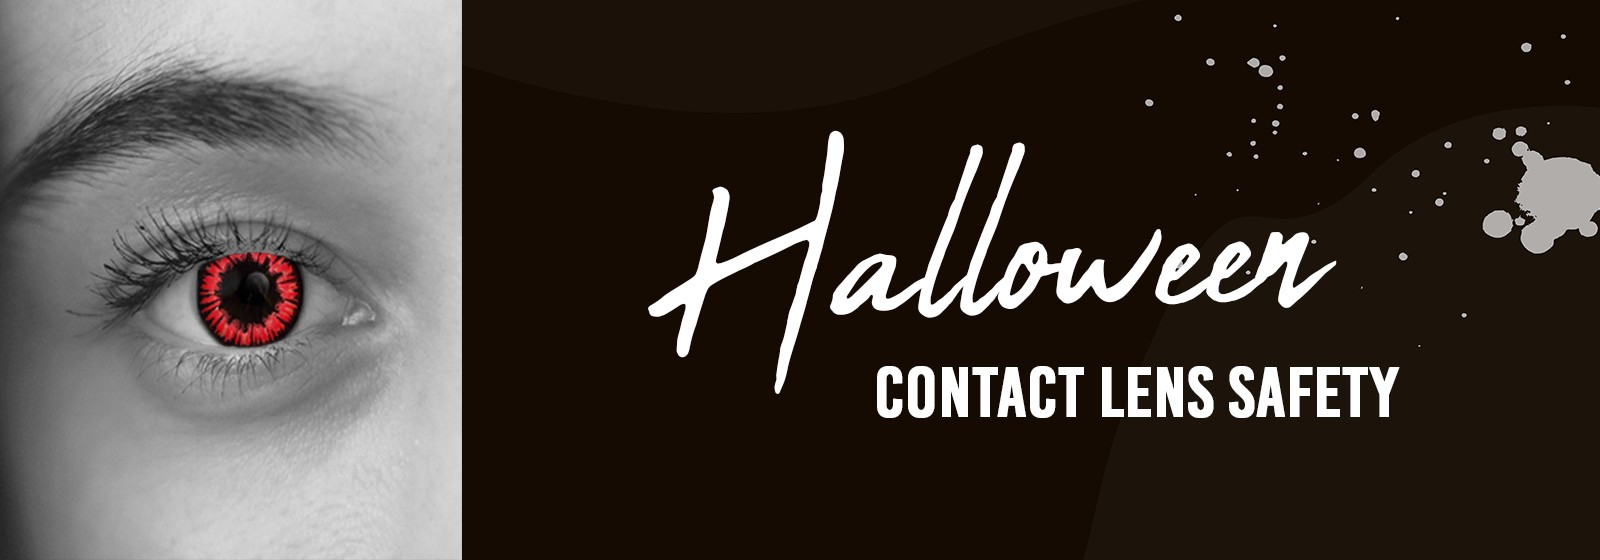 Halloween contact lens safety